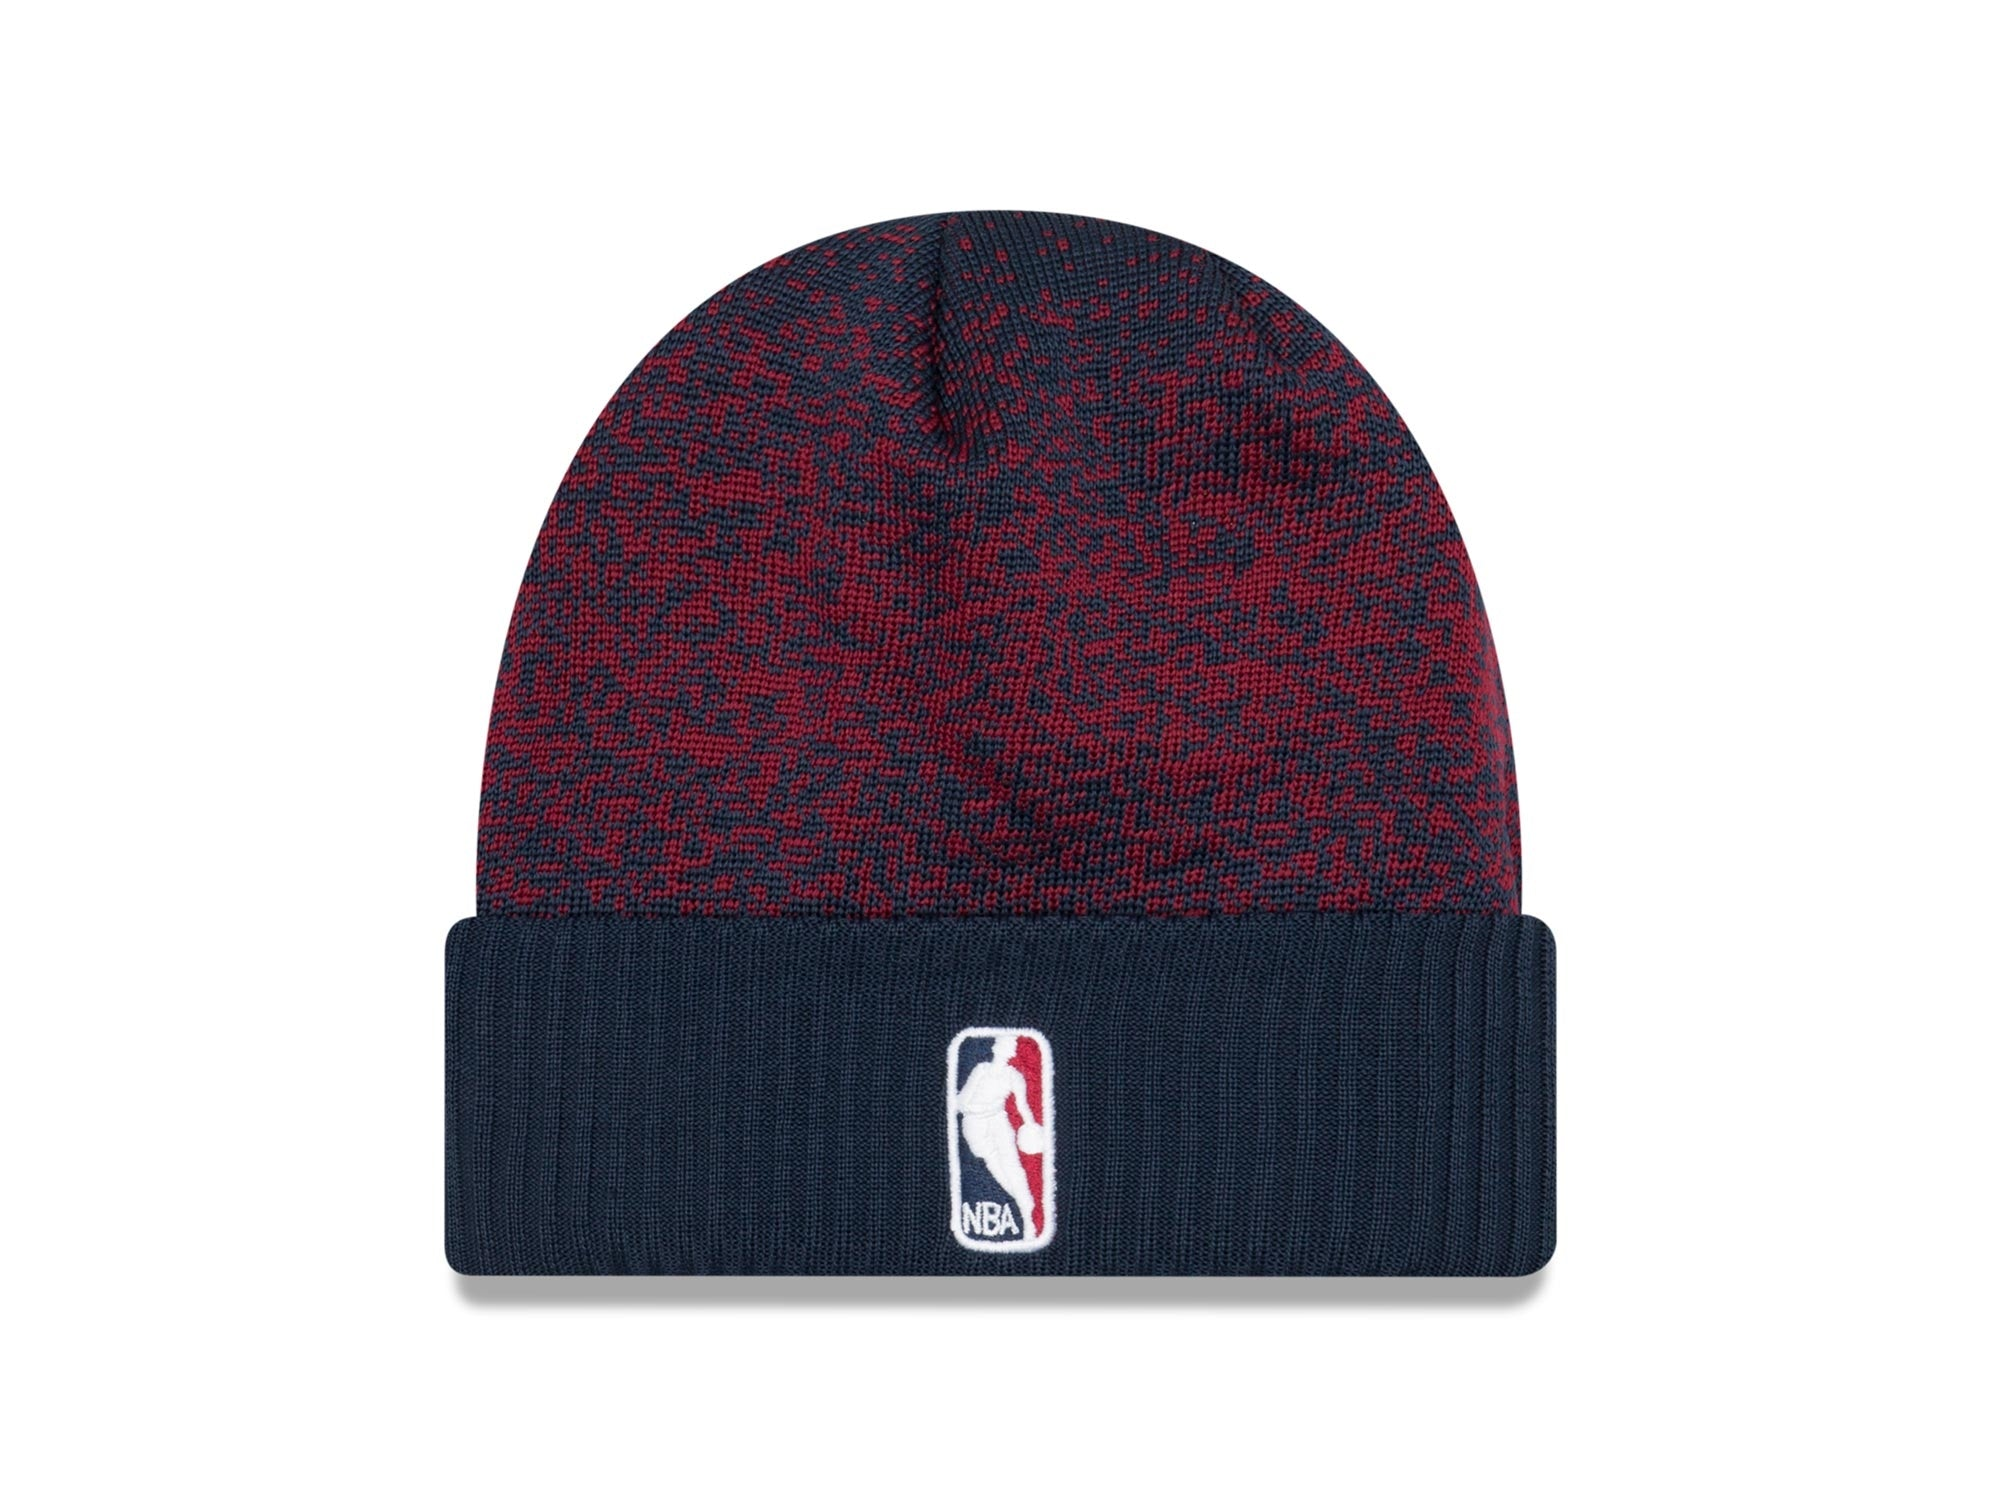 Beanie New Era Jr Nba17 Onc Cuff Clecav Unisex